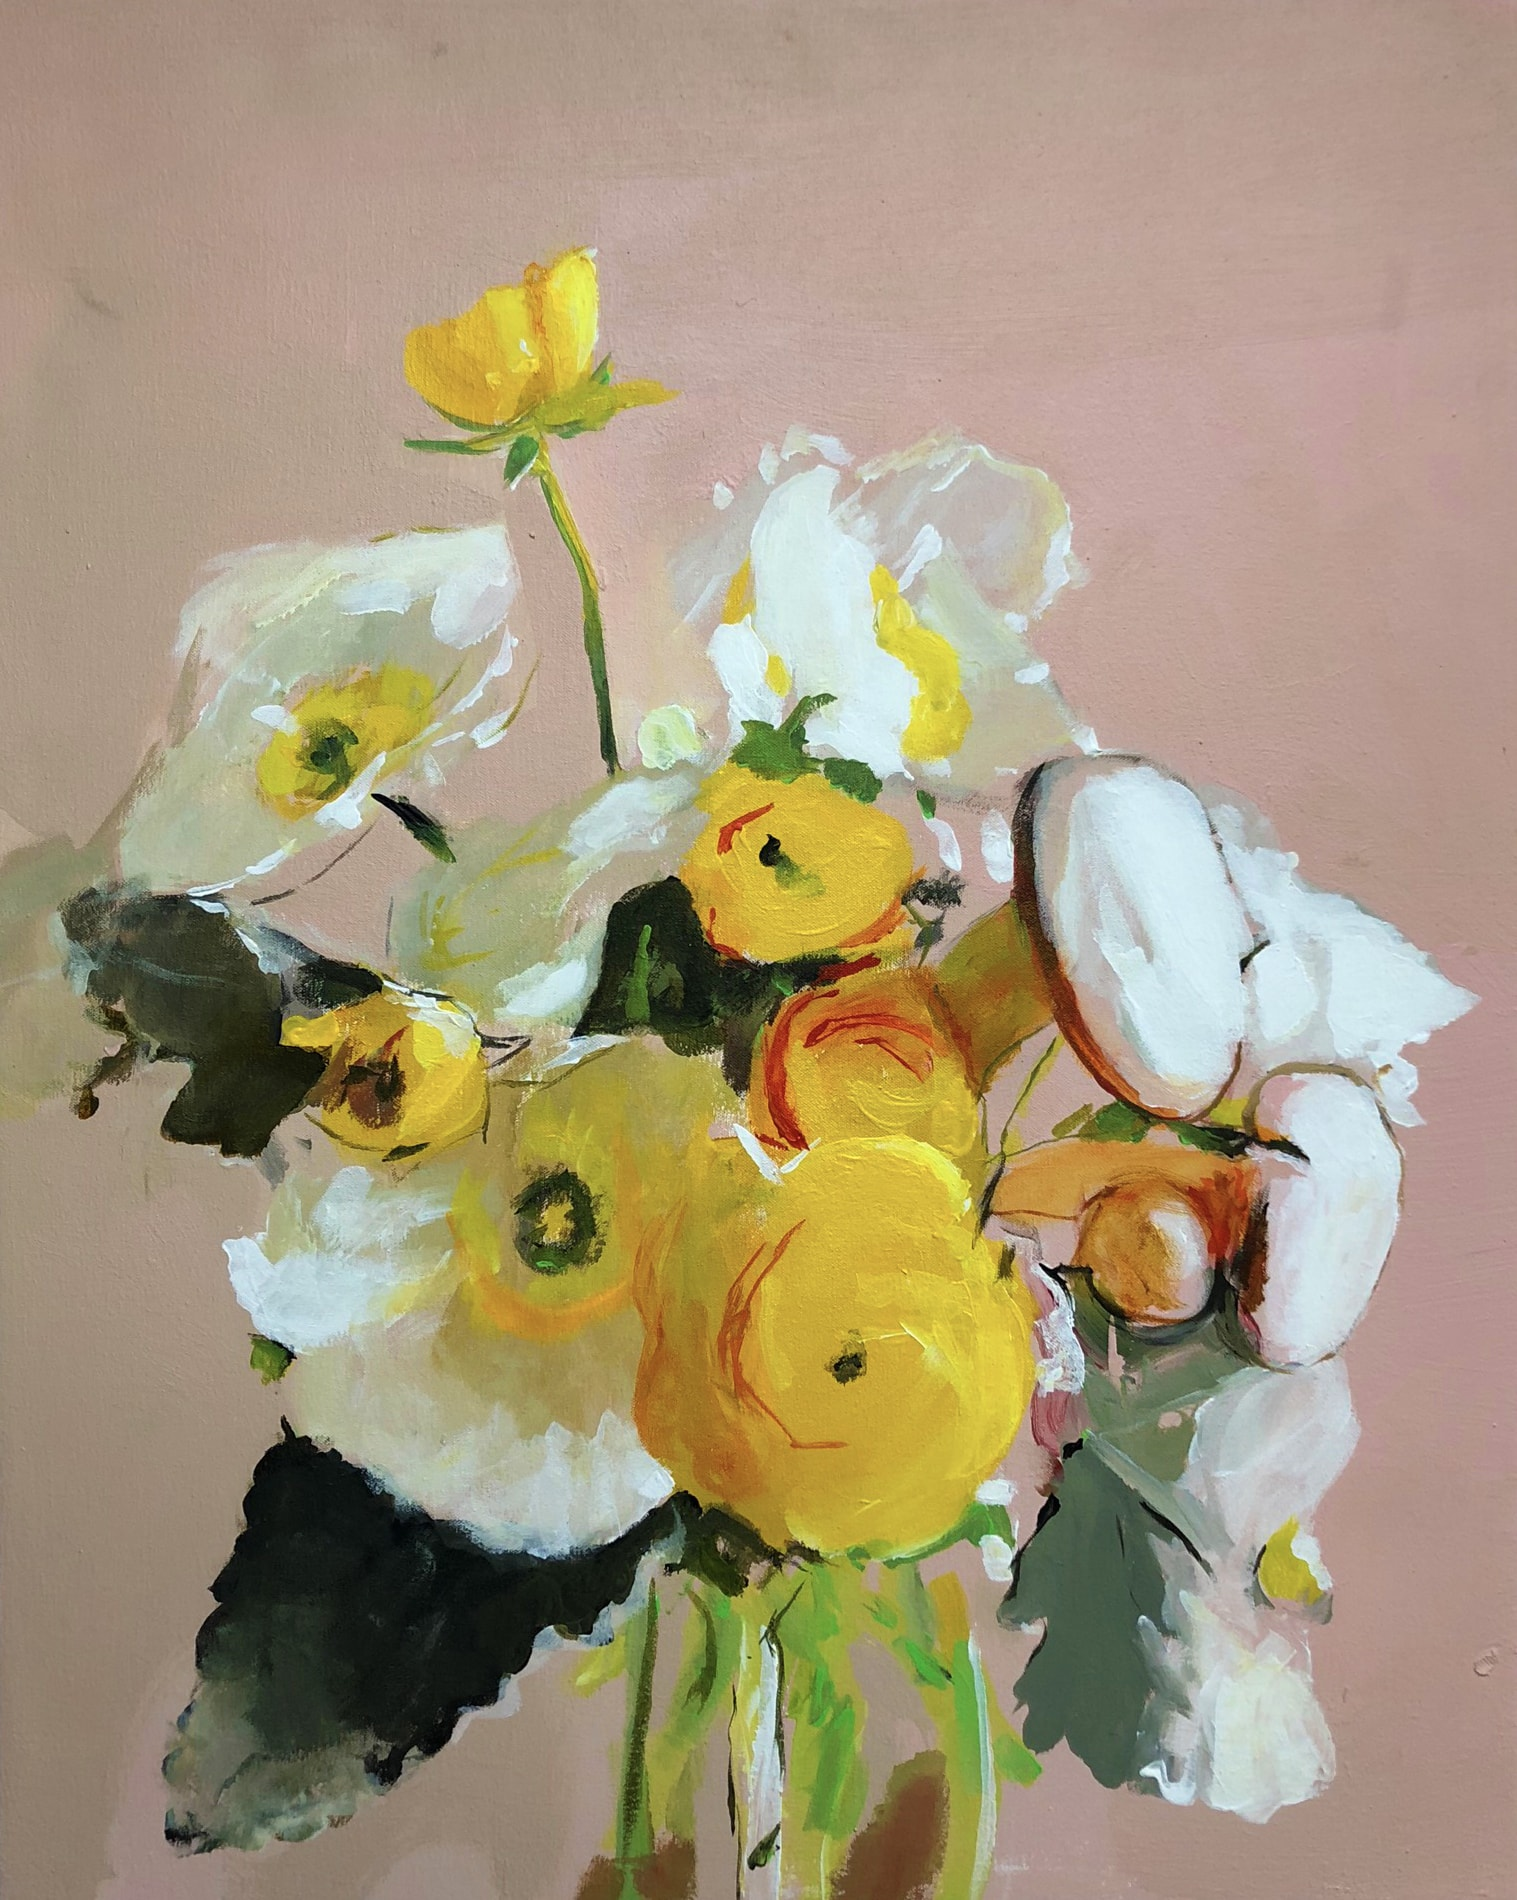 Michael_Harnish_BOUQUET_30 x 20 inches_oil